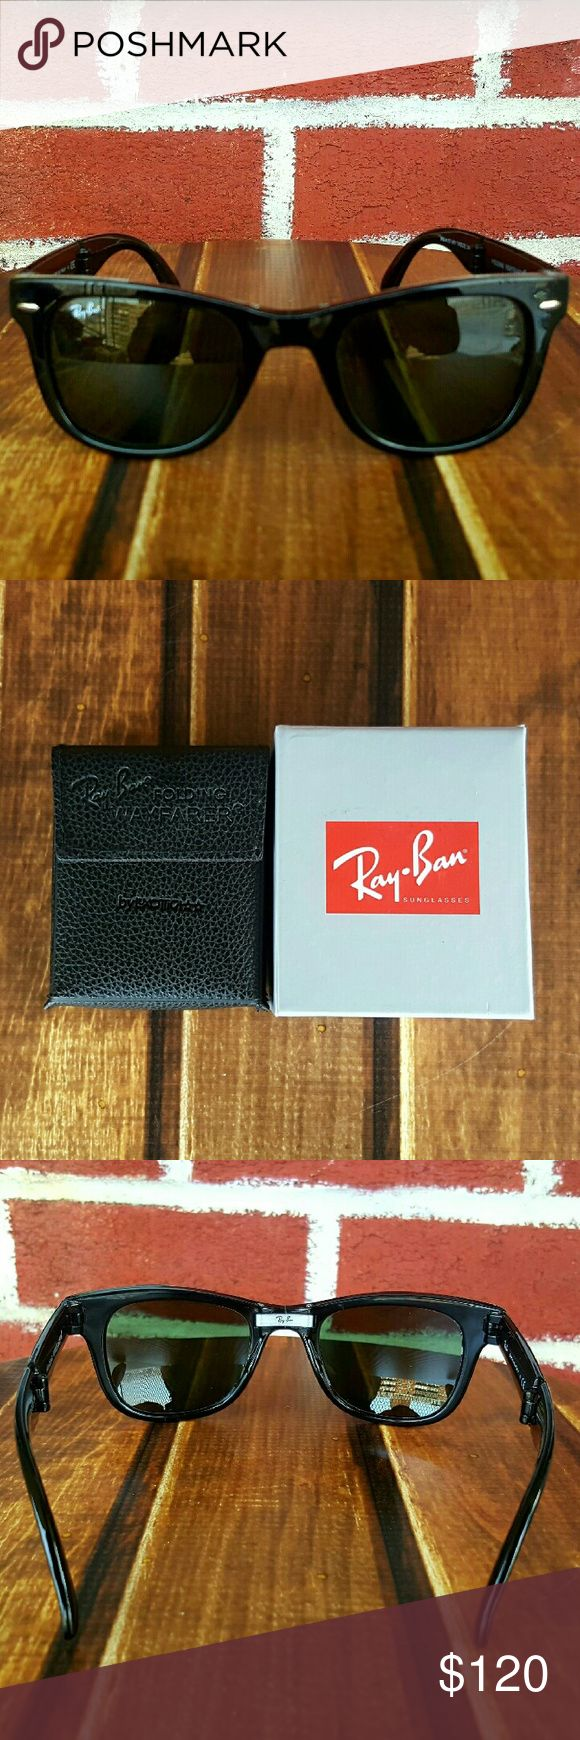 Ray-Ban 4105 Folding Wayfarer 601 50mm Unisex 💞4105 Black Ray-Ban Folding Wayfarer 50mm 💝  ❌NO TRADES! ❌NOT POLARIZED  📪Same/next day shipping  Brand New comes with original Box & Cleaning cloth. 🚫 NO BOOKLETS            100% AUTHENTIC GENUINE RAY-BAN   All my rayban sunglasses come from a luxottica authorized distributor Ray-Ban Accessories Sunglasses